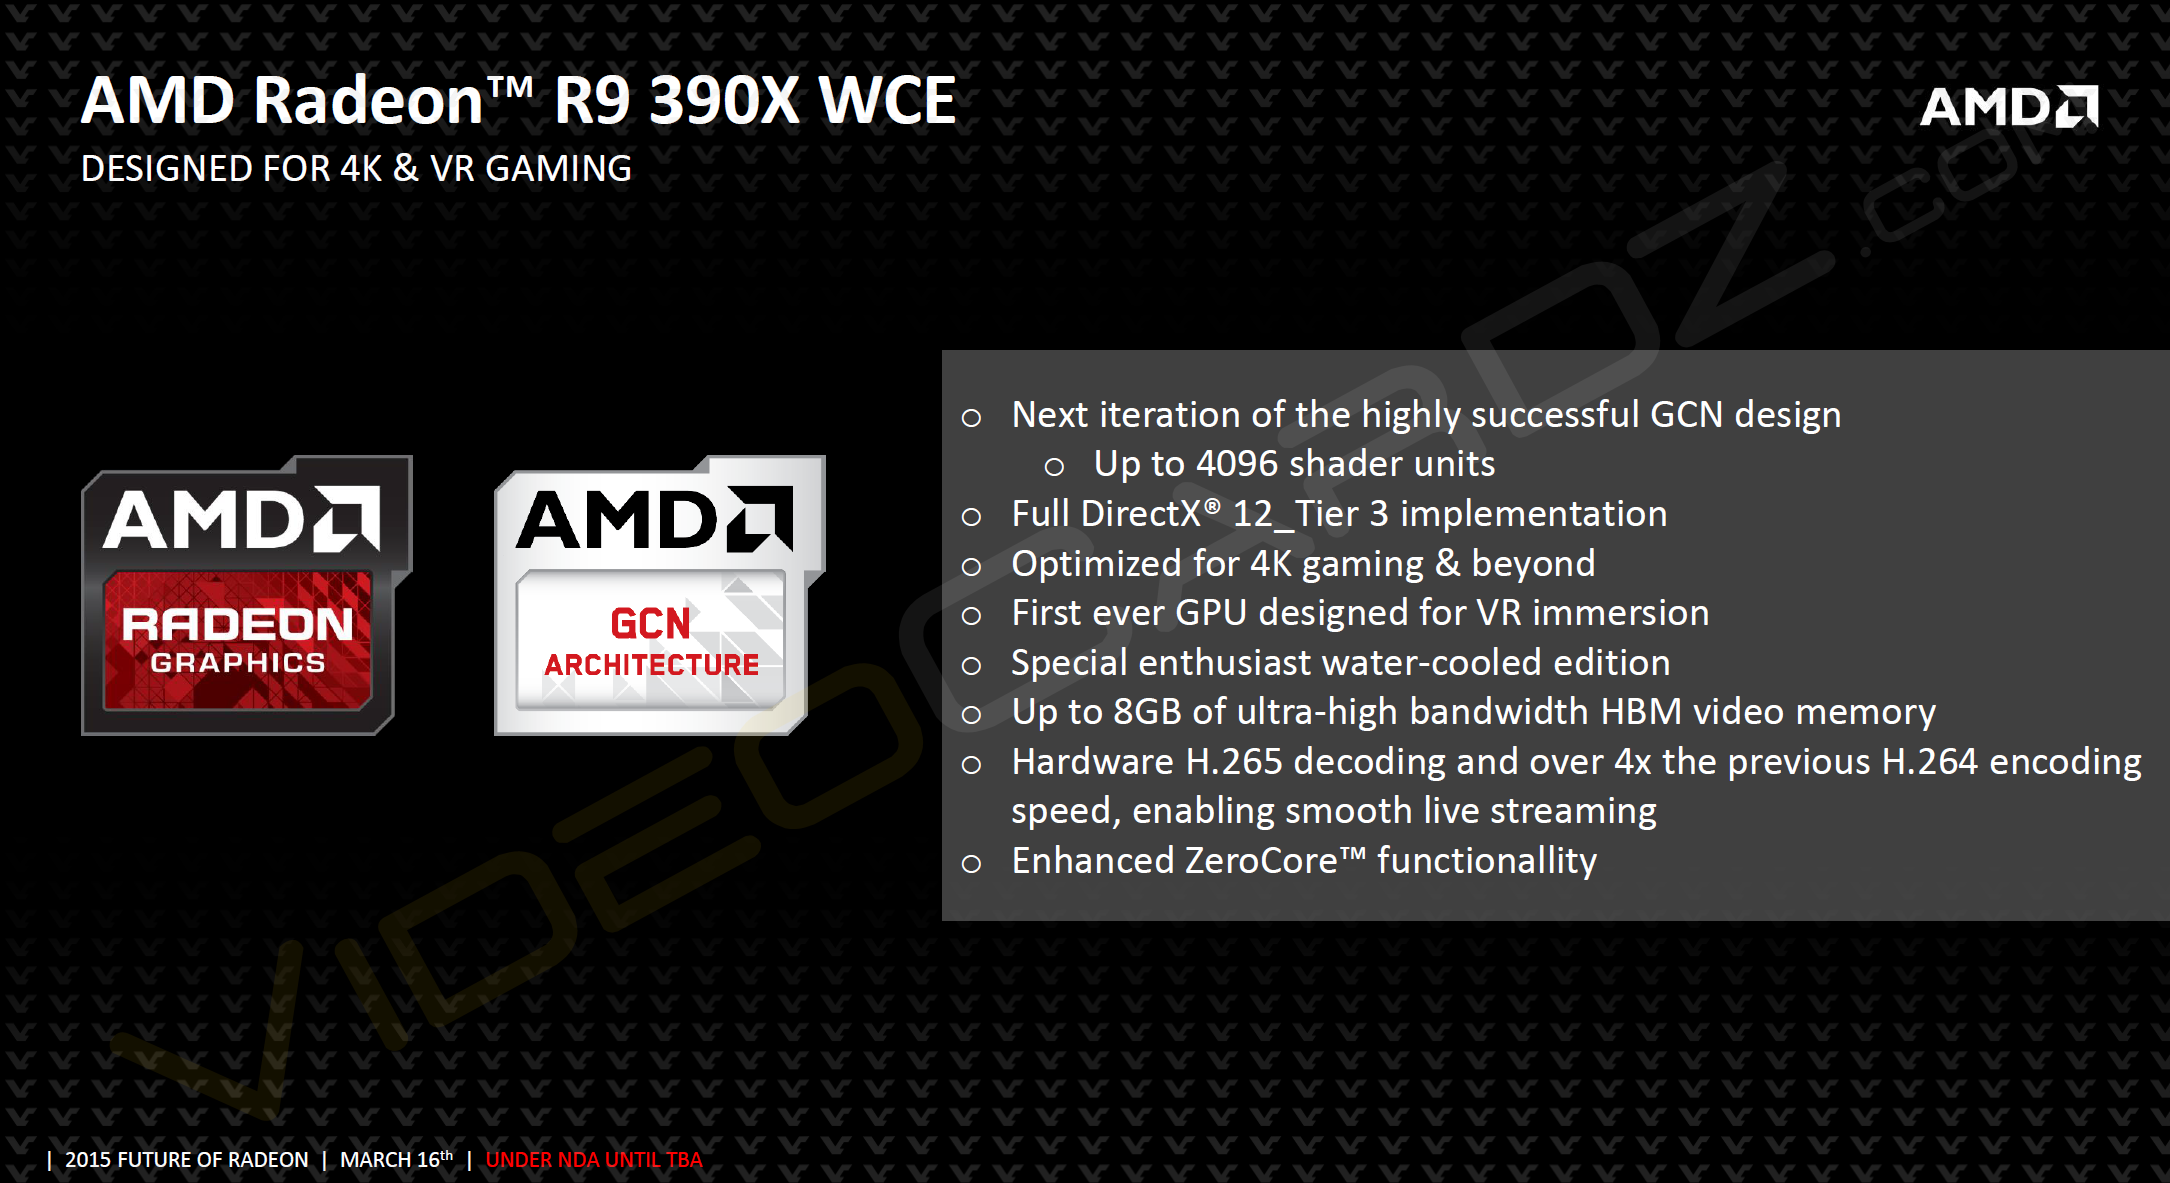 AMD R9 390X WCE, an 8GB GPU with 4096 shaders!